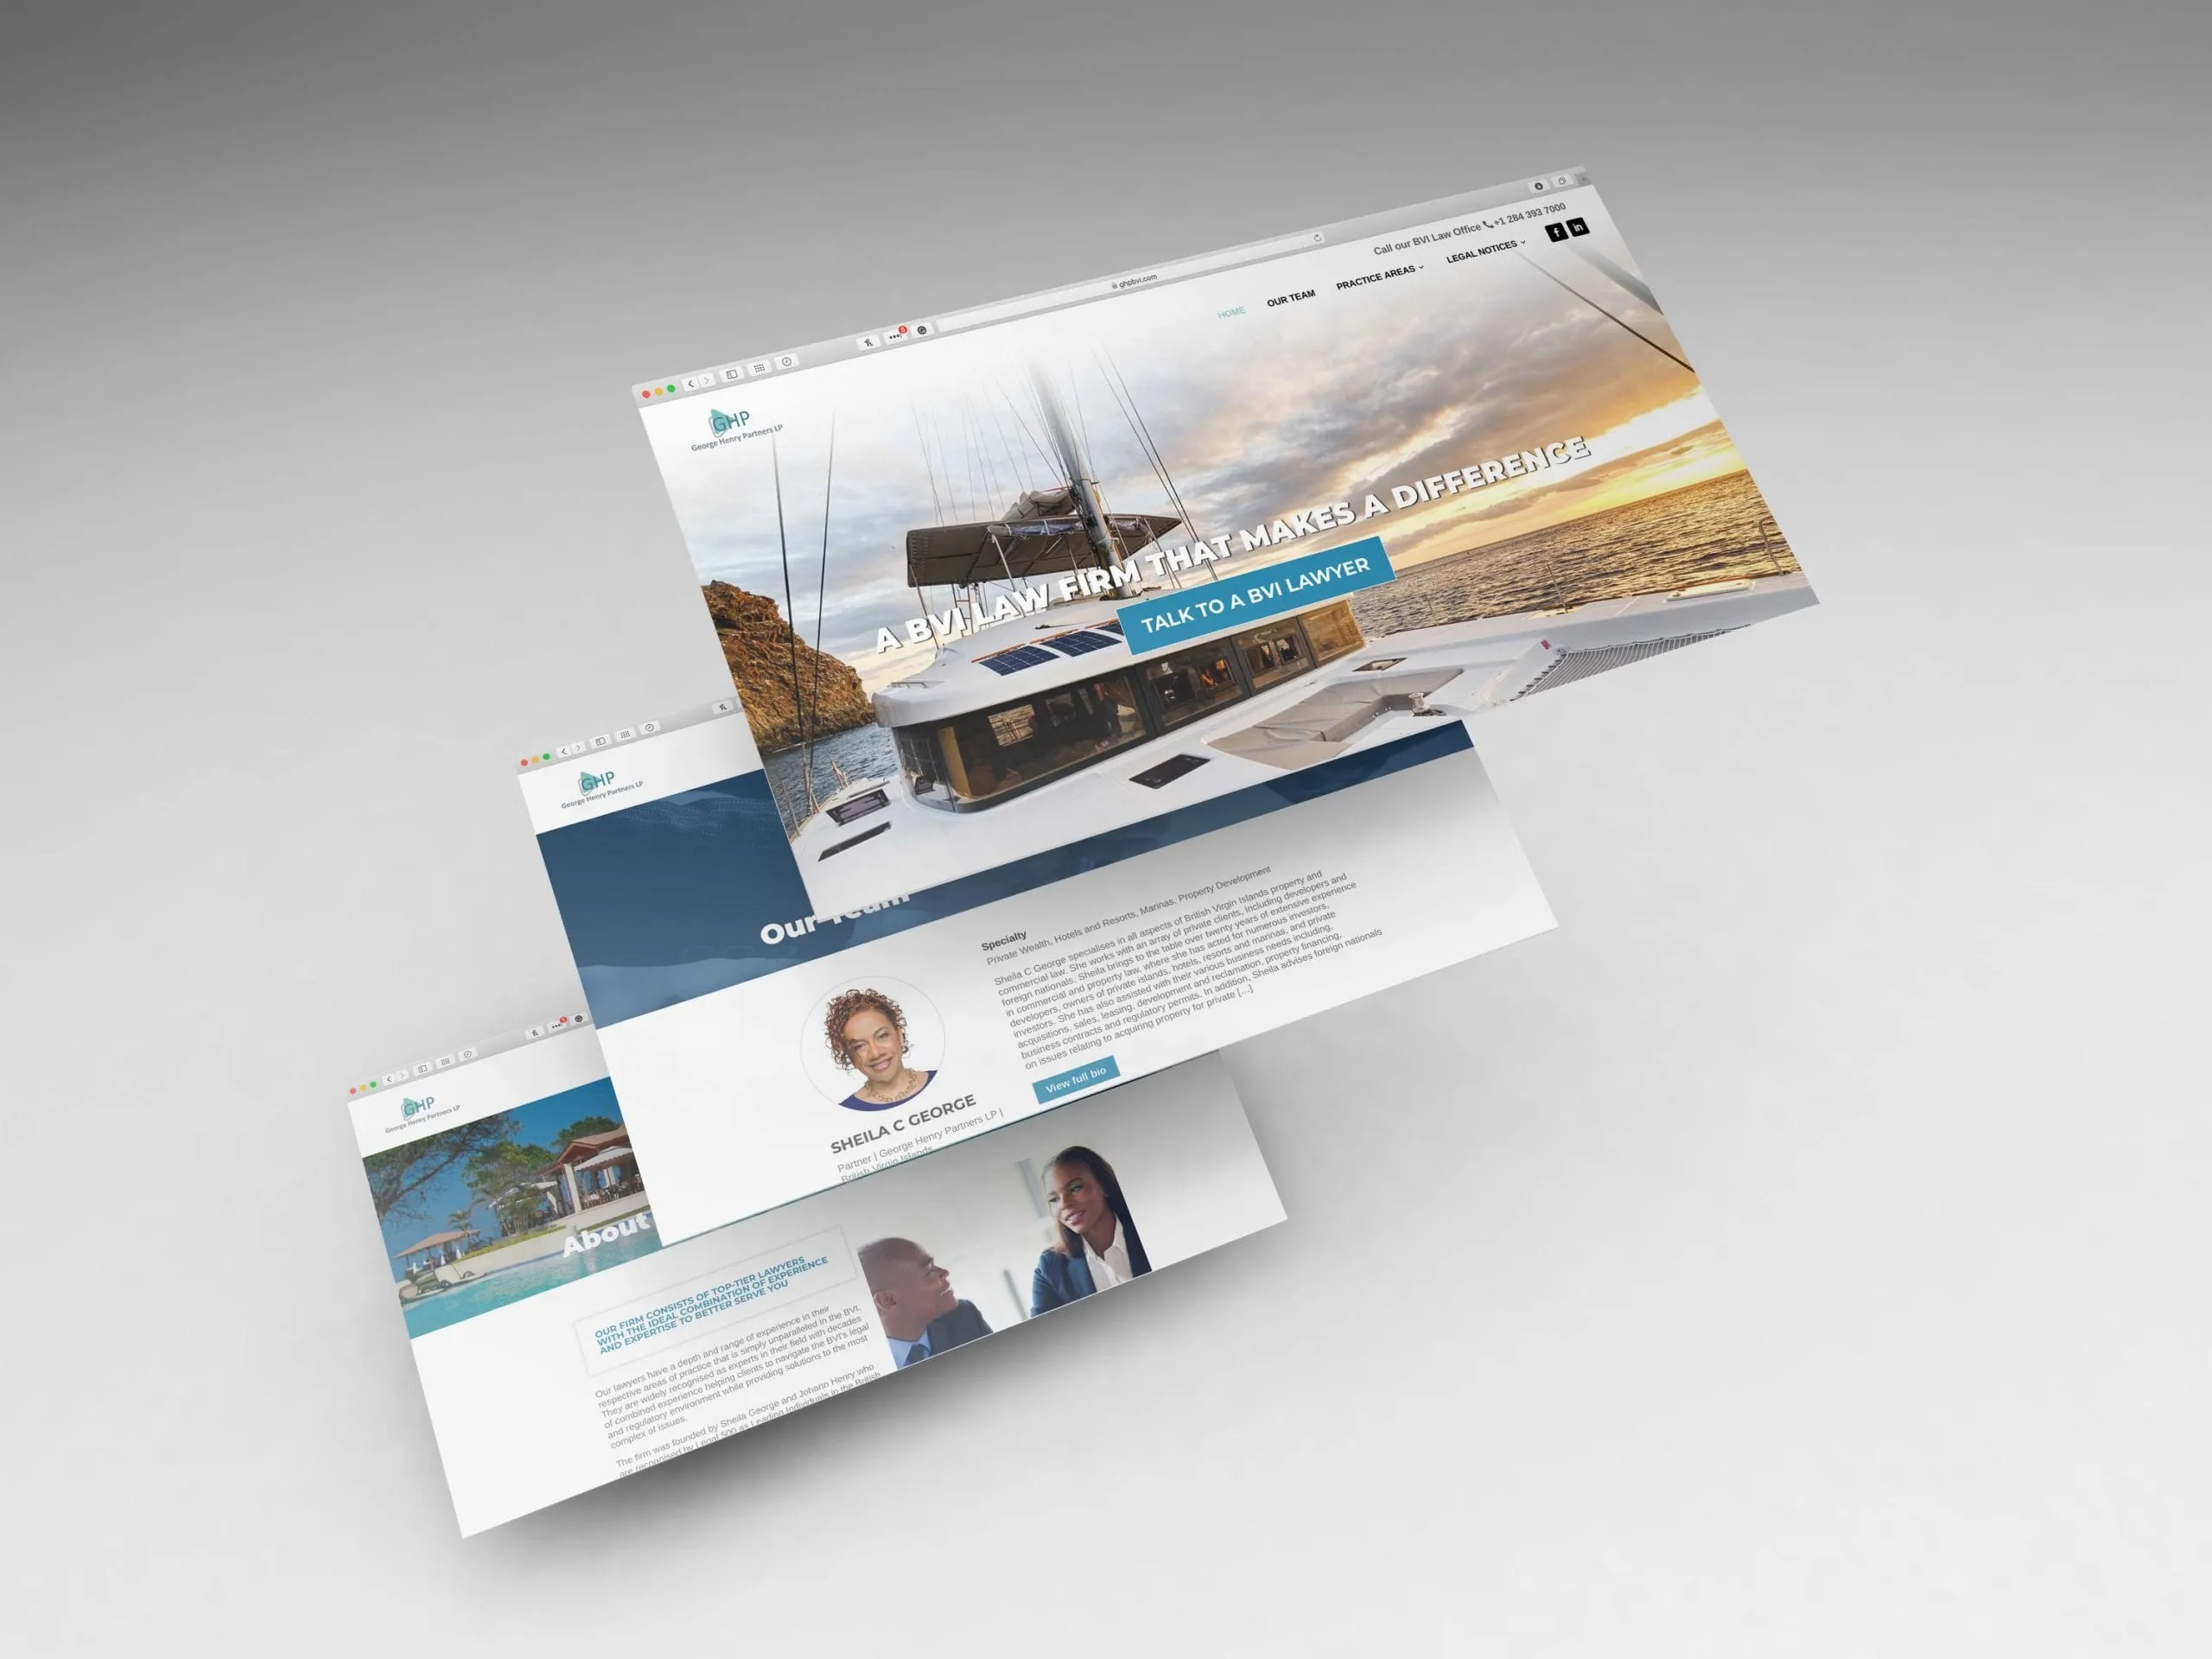 GHP BVI Law Firm Website layouts